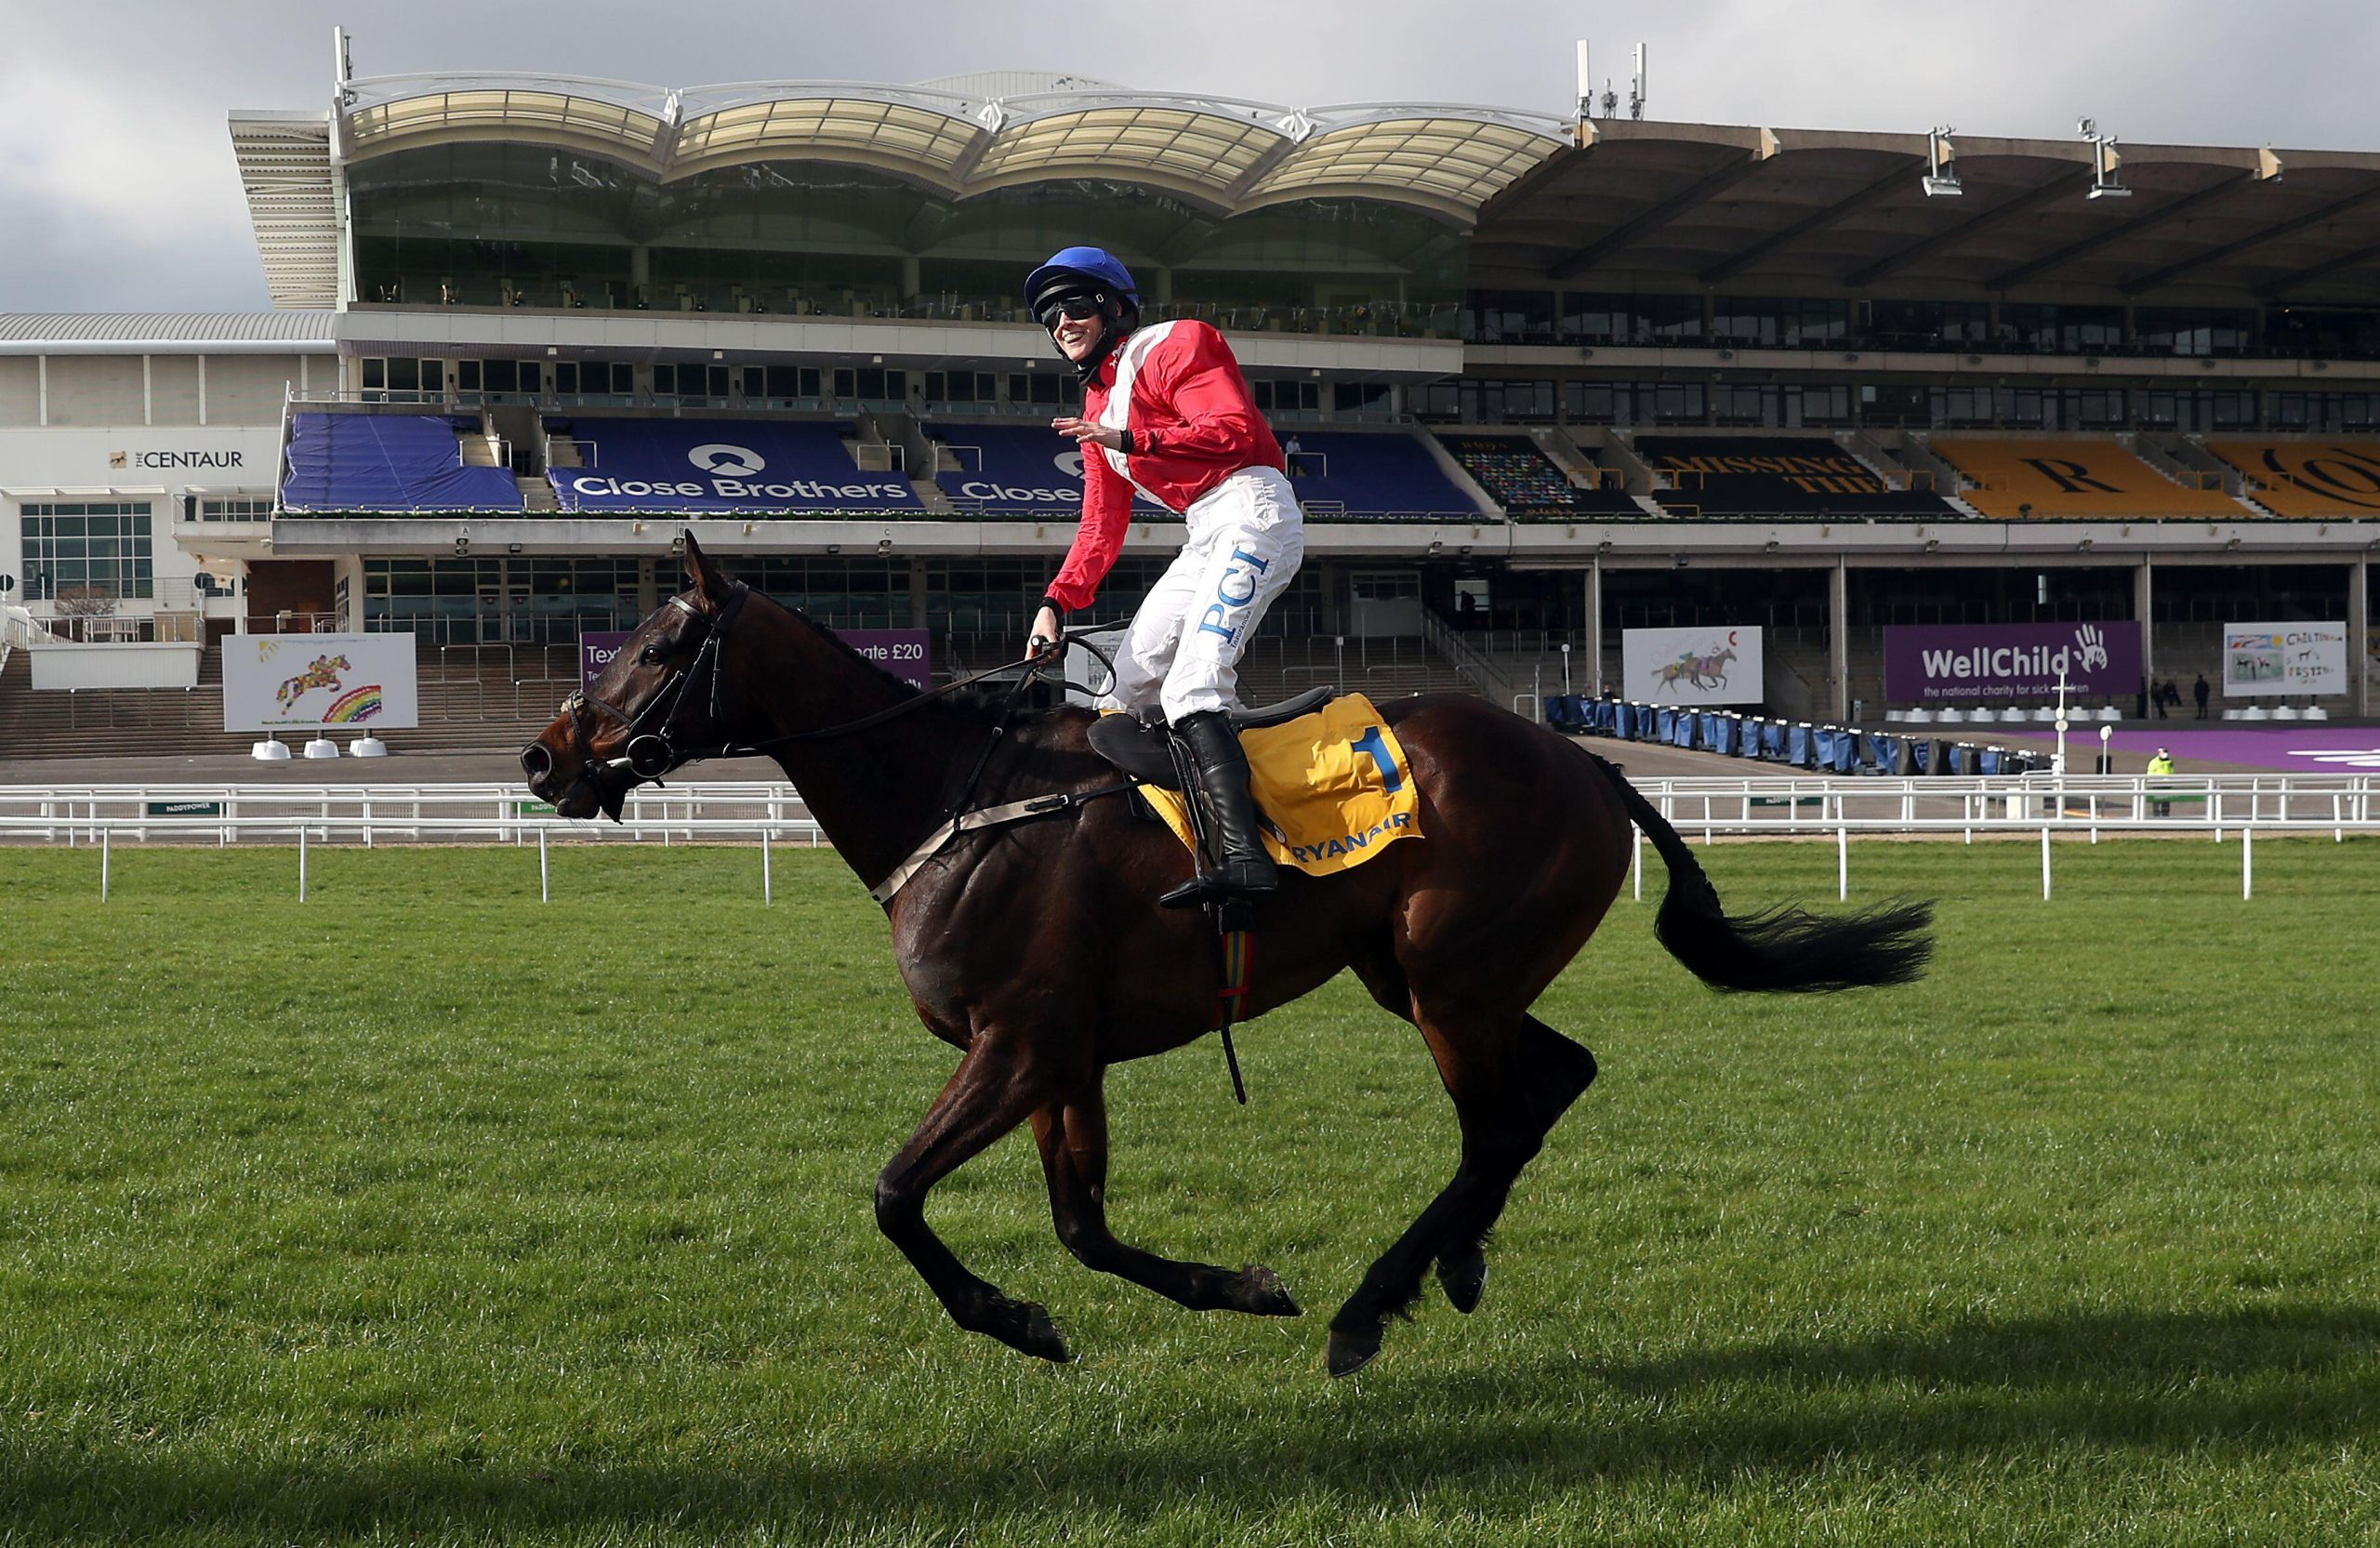 2F3YP2G Jockey Rachael Blackmore celebrates after winning the Ryanair Chase on Allaho during day three of the Cheltenham Festival at Cheltenham Racecourse. Picture date: Thursday March 18, 2021.